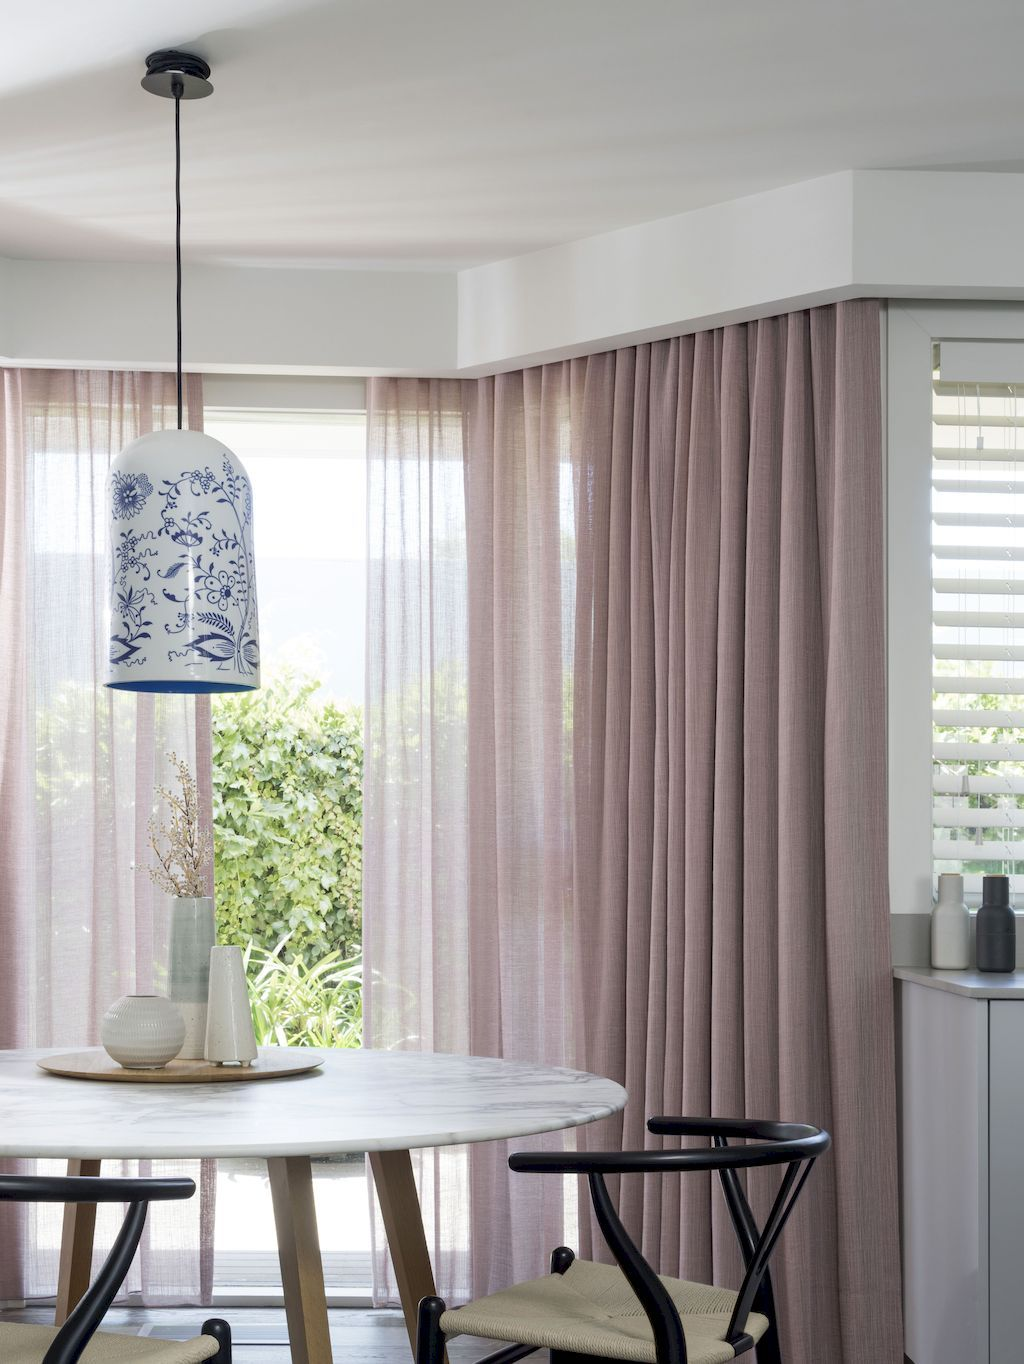 Trendy Design Curtains Can Change Your Residence Miraculously In